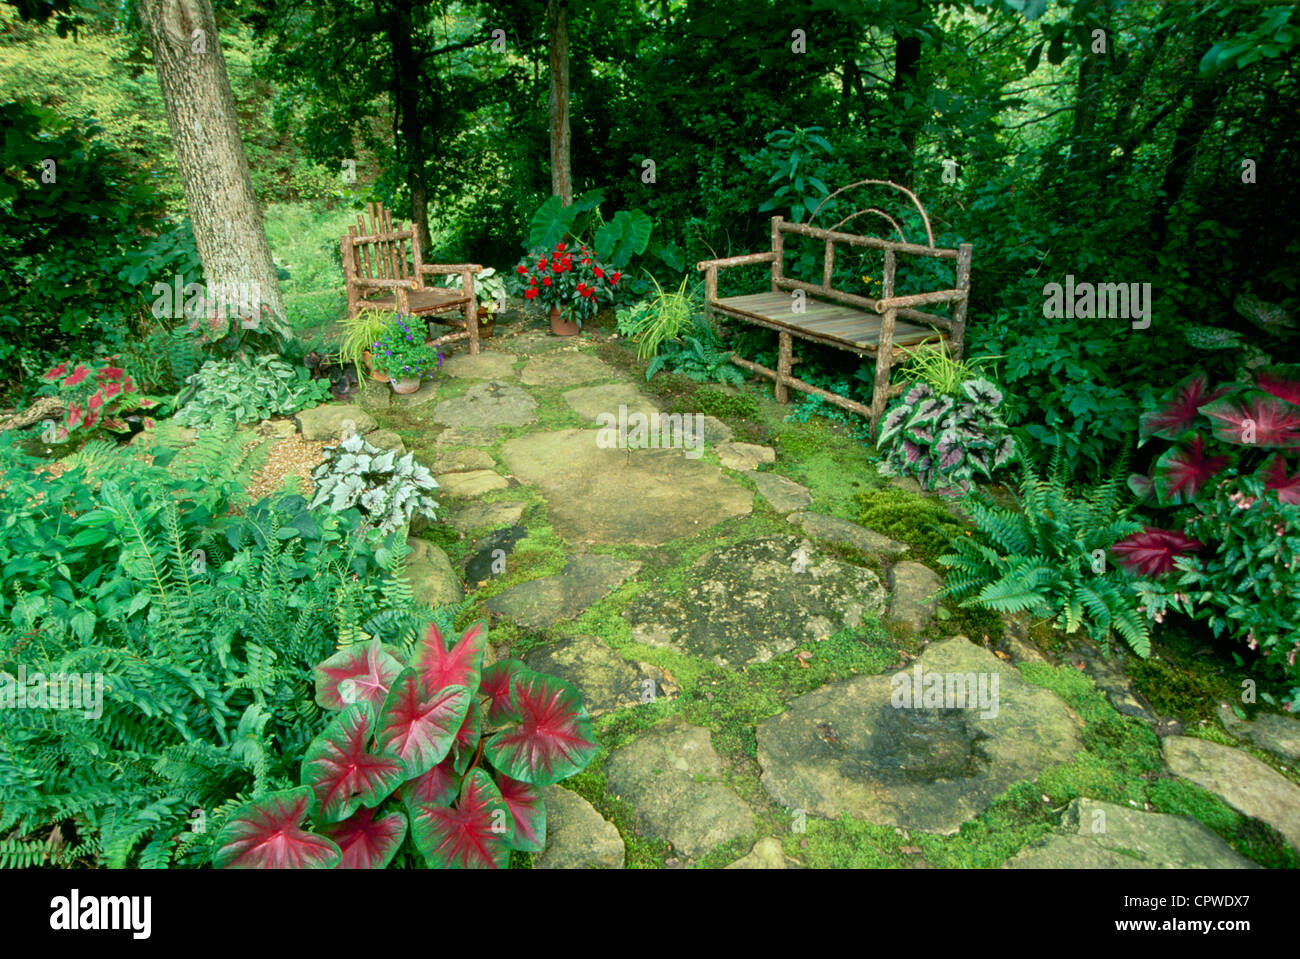 Shade Garden With Handmade Rustic Furniture And Colorful Caladium Stock Photo Alamy